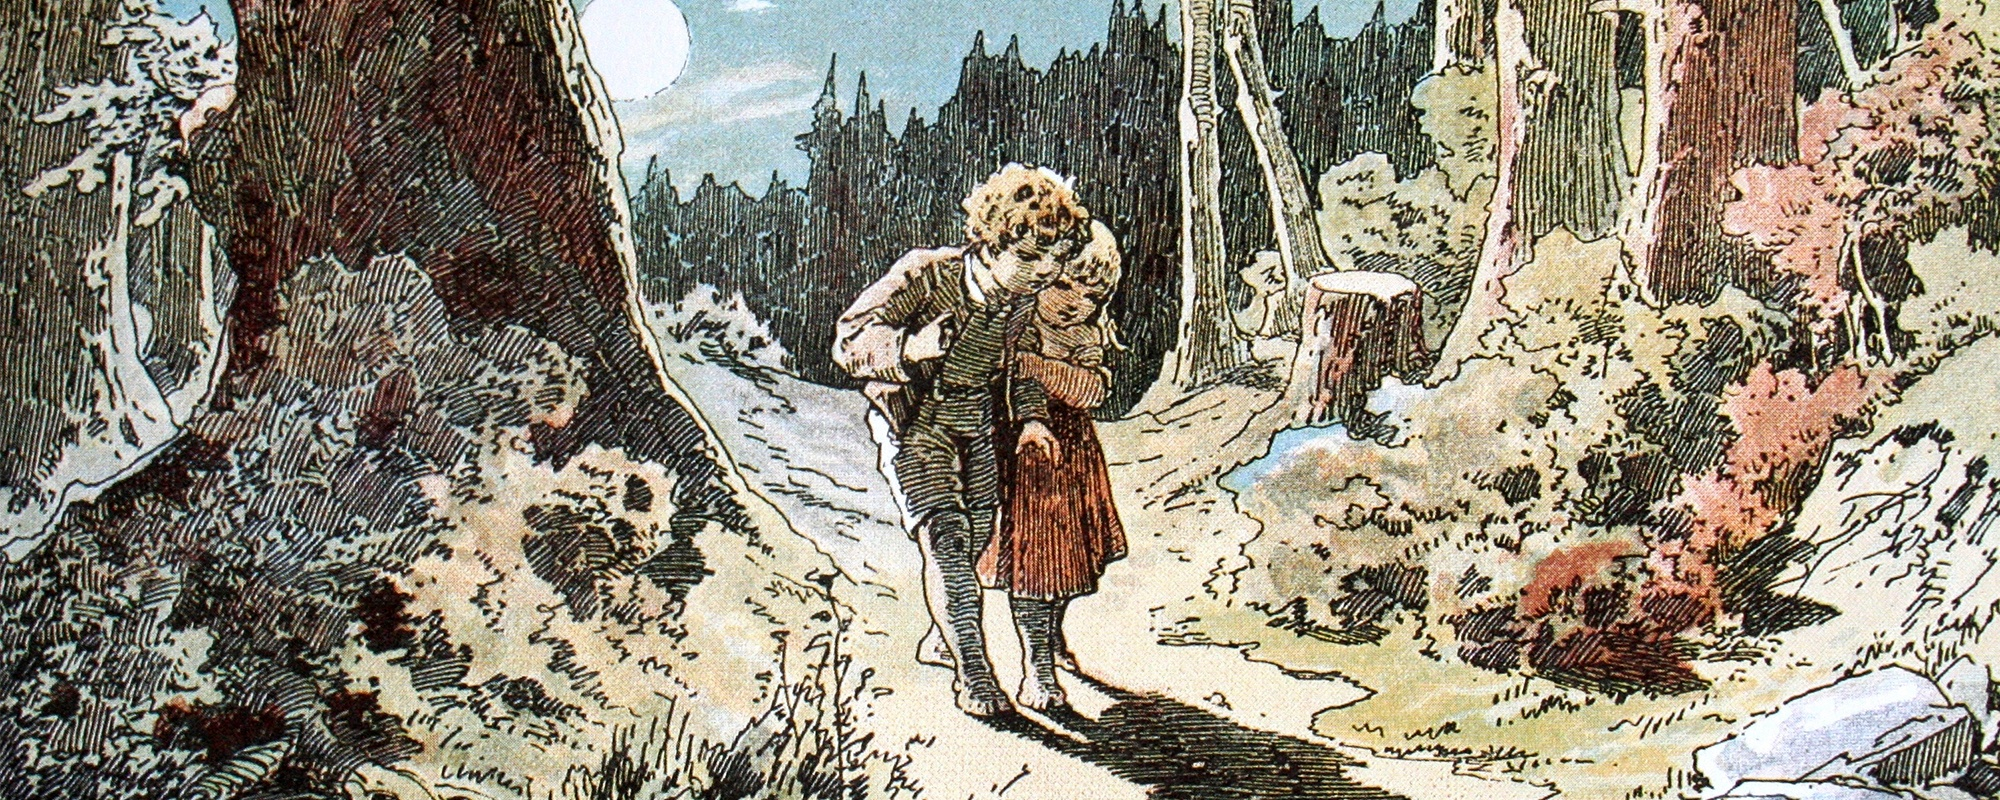 On the Importance of Fairy Tales